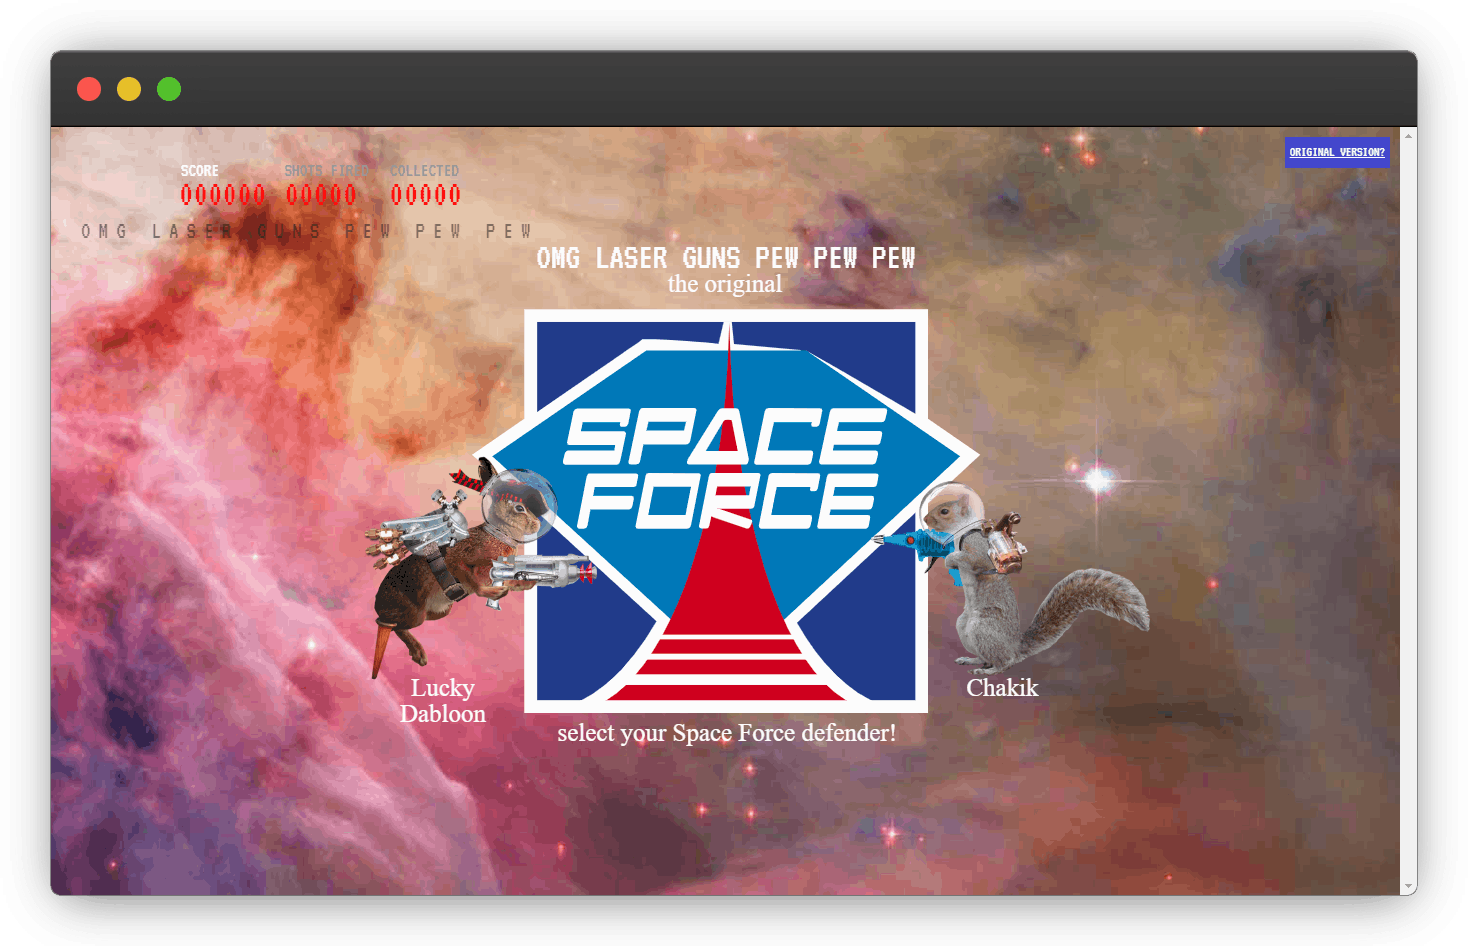 Space force landing page